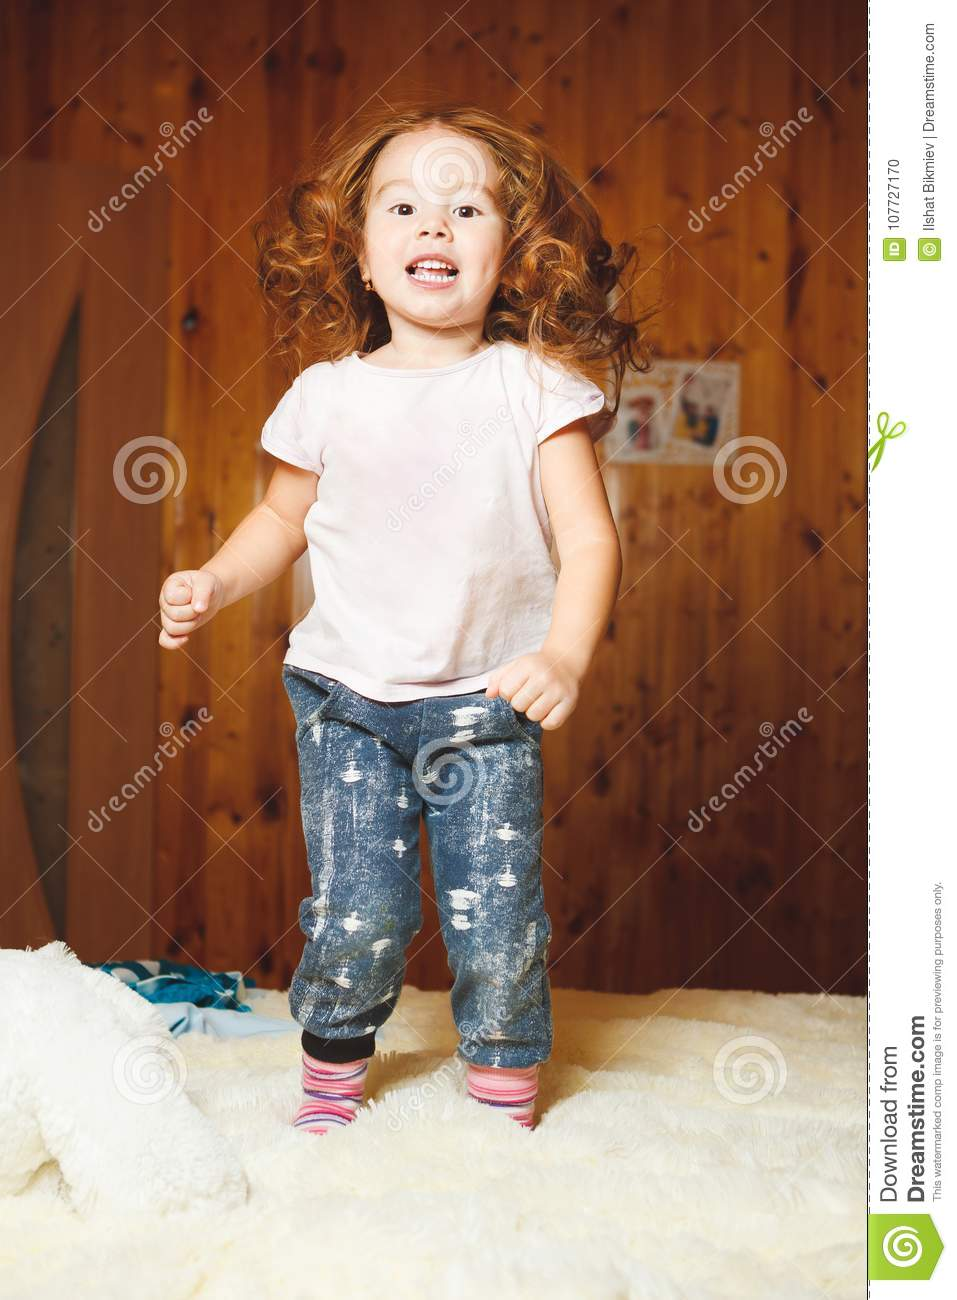 Download Funny Baby Jumping On The Bed Stock Photo Image Of Smile Delight